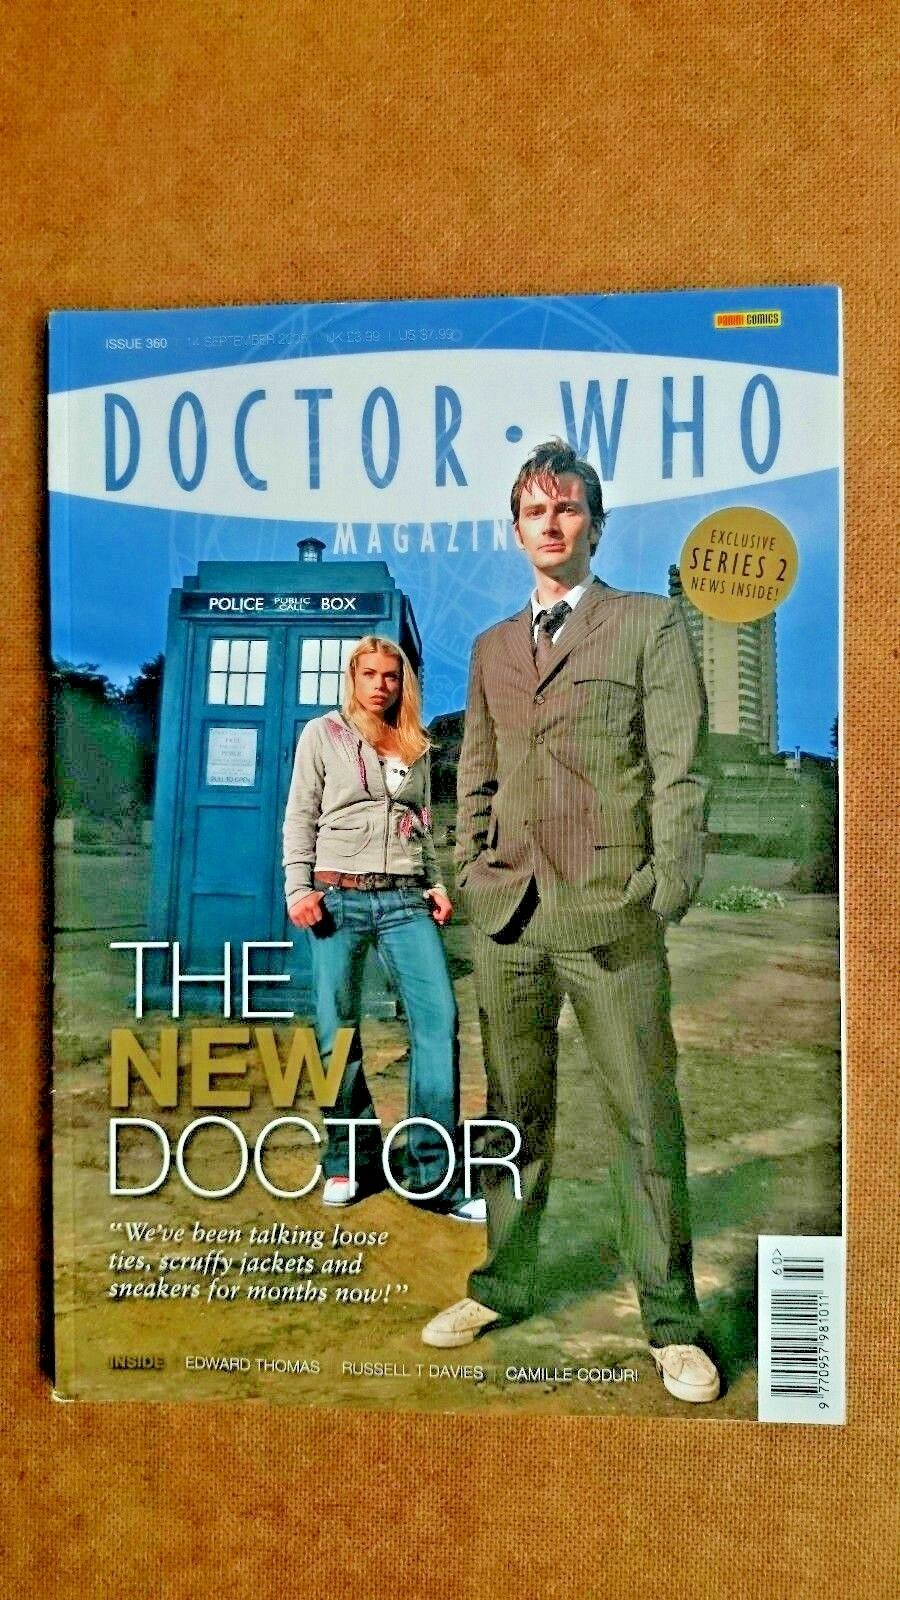 Doctor Who Magazine issue 360 The New Doctor